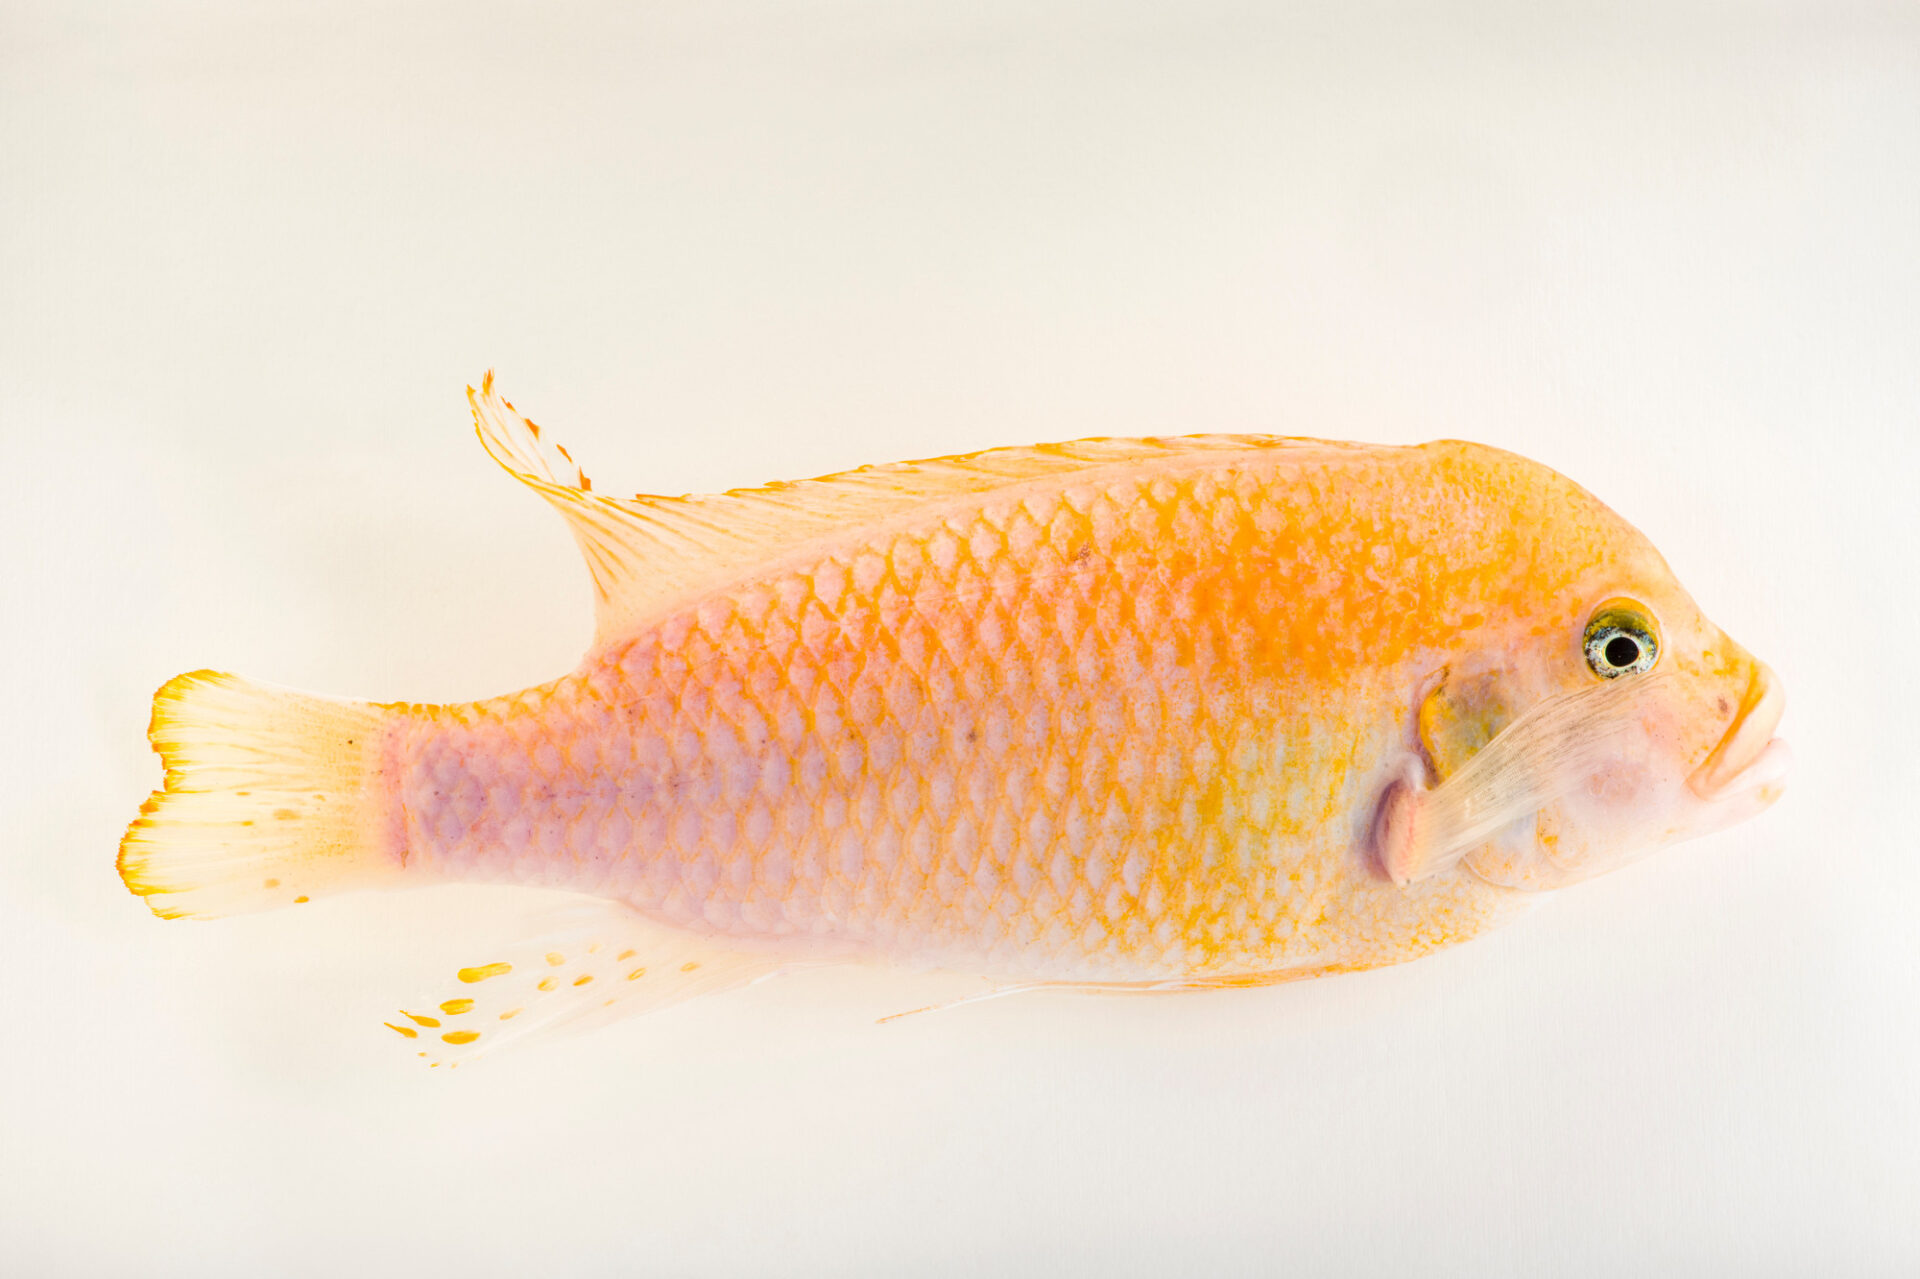 Photo: A red zebra cichlid (Maylandia estherae) from a private collection.